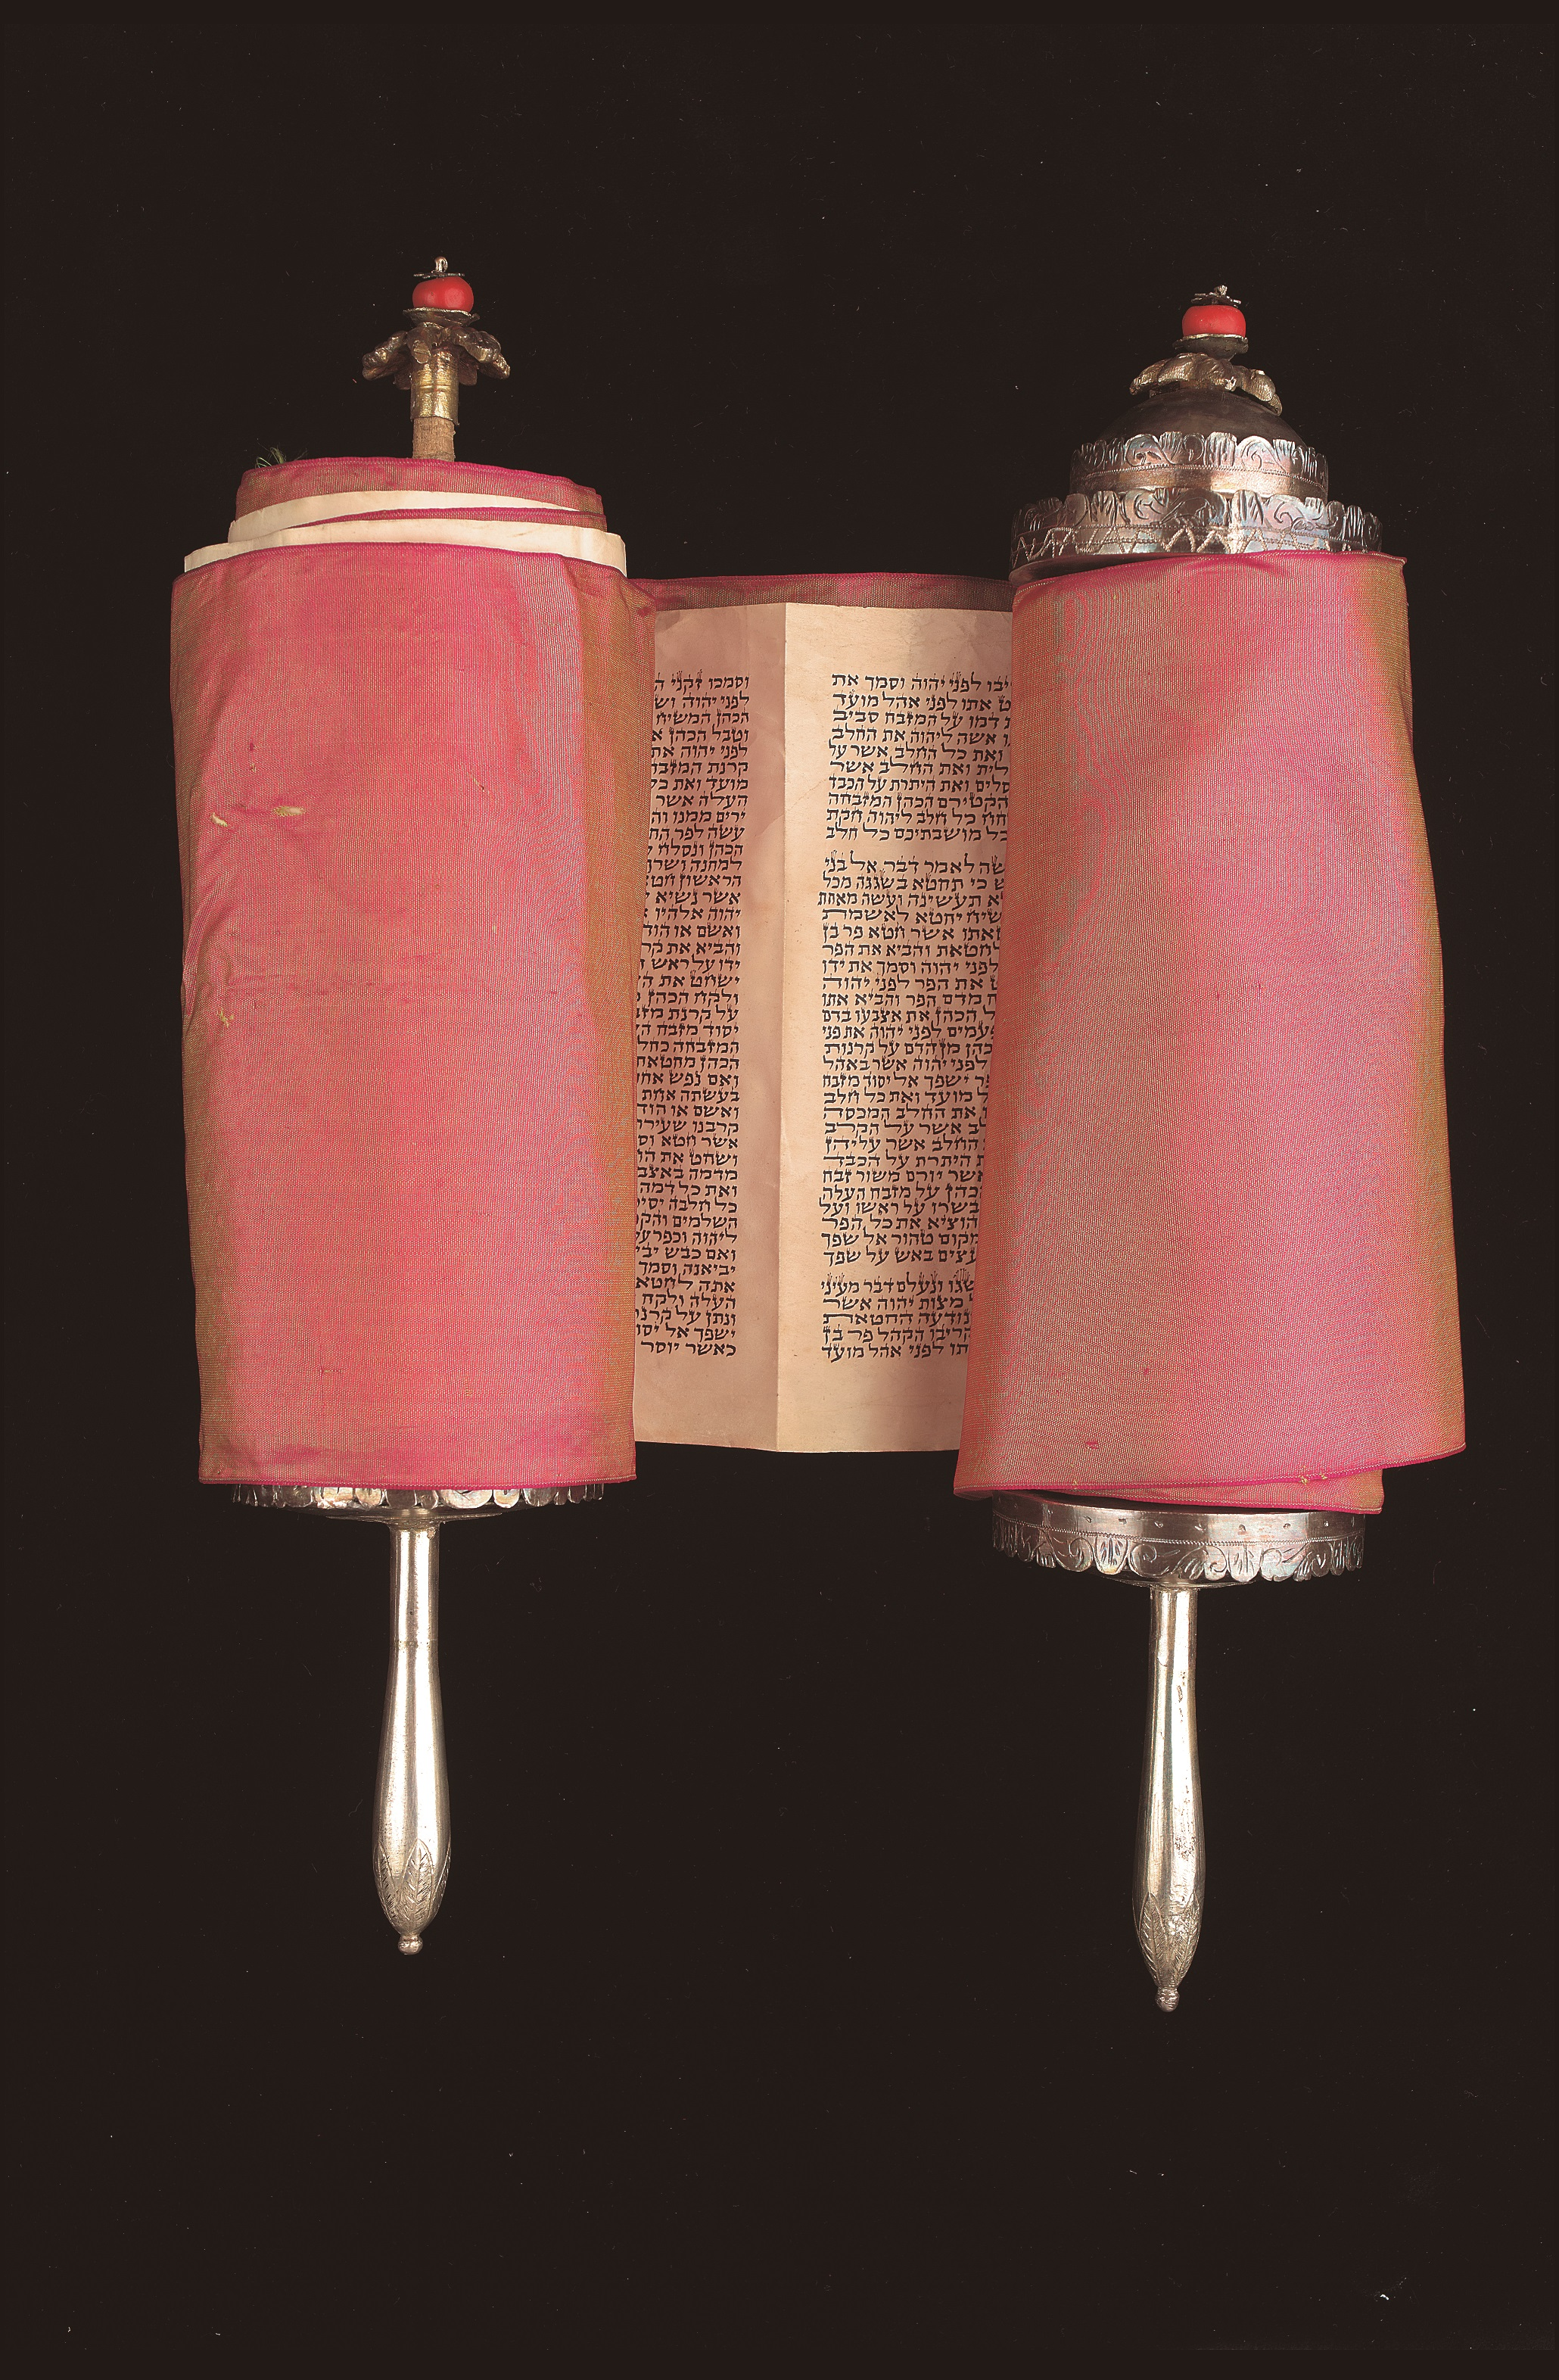 Torah scroll with silver rollers and red cloth covered etz chayim, hebrew text visible